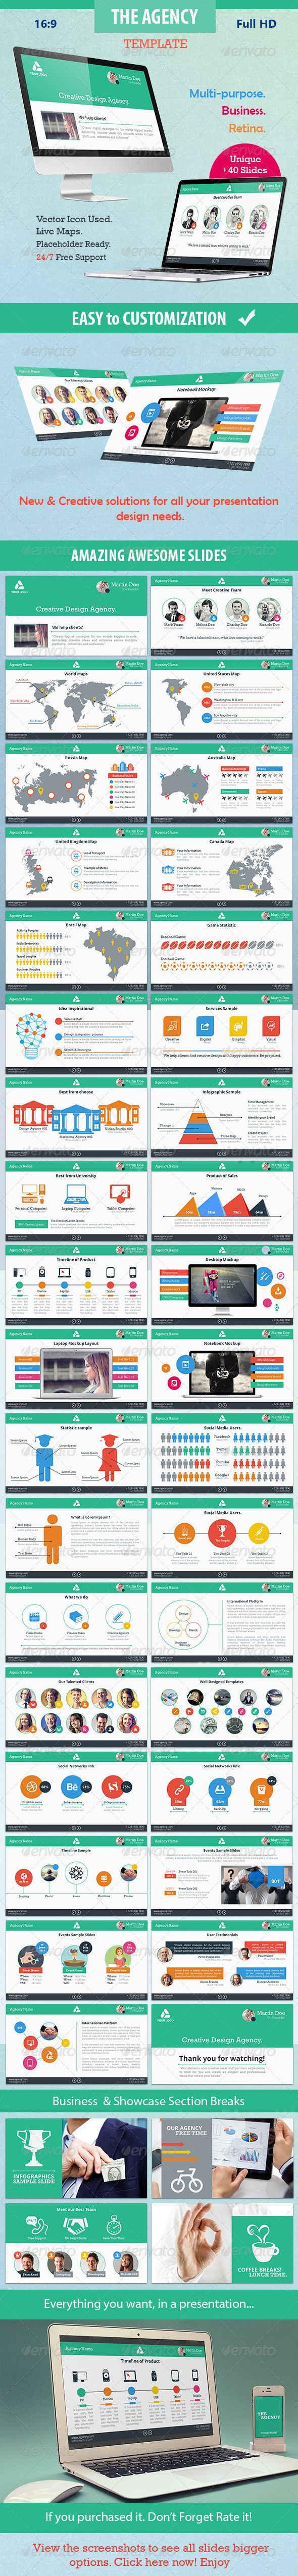 The Agency - Multipurpose Powerpoint Template